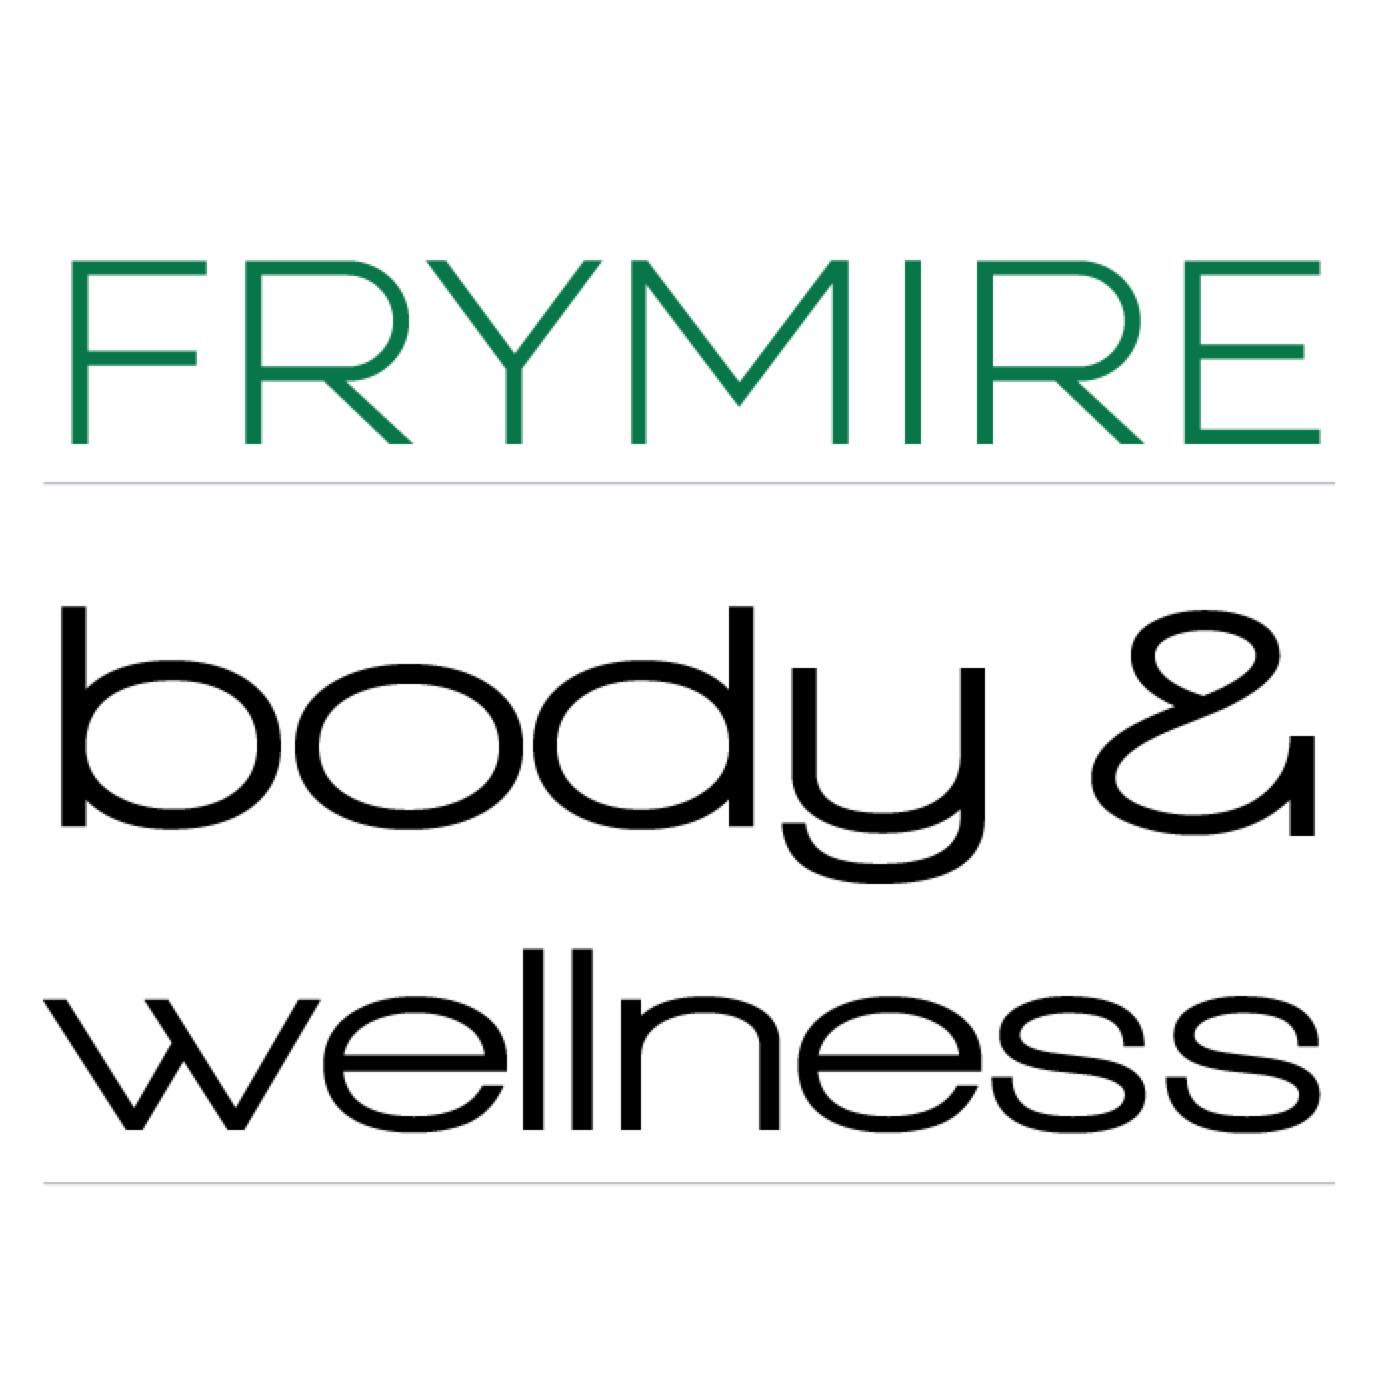 Frymire Body and Wellness